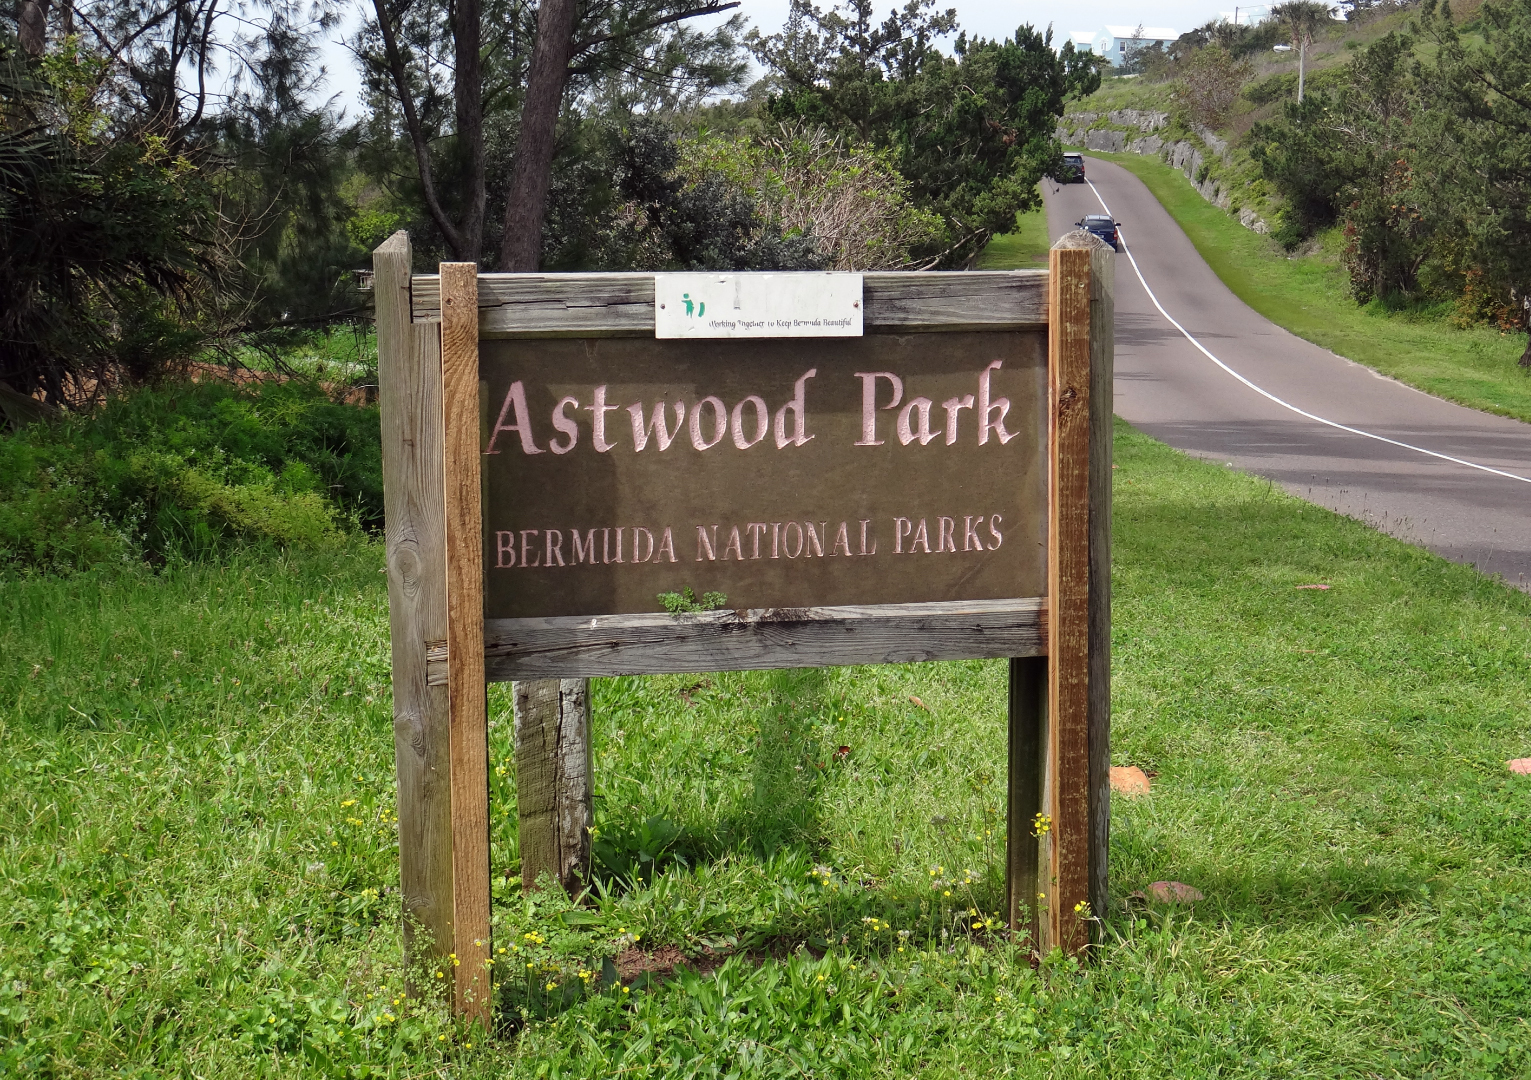 Astwood Cove & Park